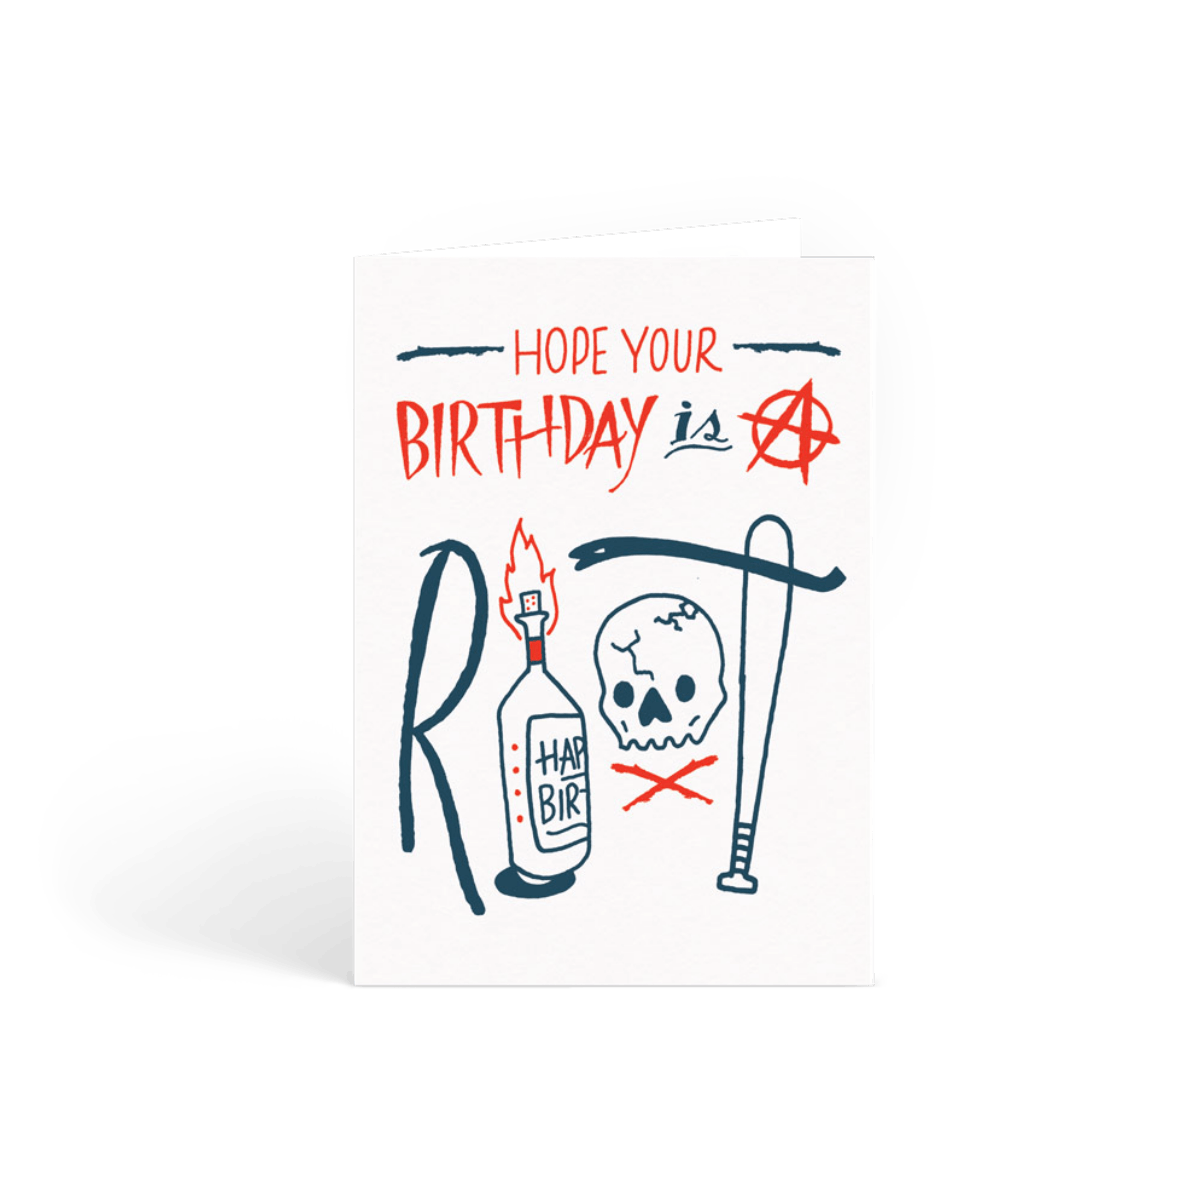 Https%3a%2f%2fwww.papier.com%2fproduct image%2f16181%2f2%2fbirthday riot 4277 front 1484739800.png?ixlib=rb 1.1